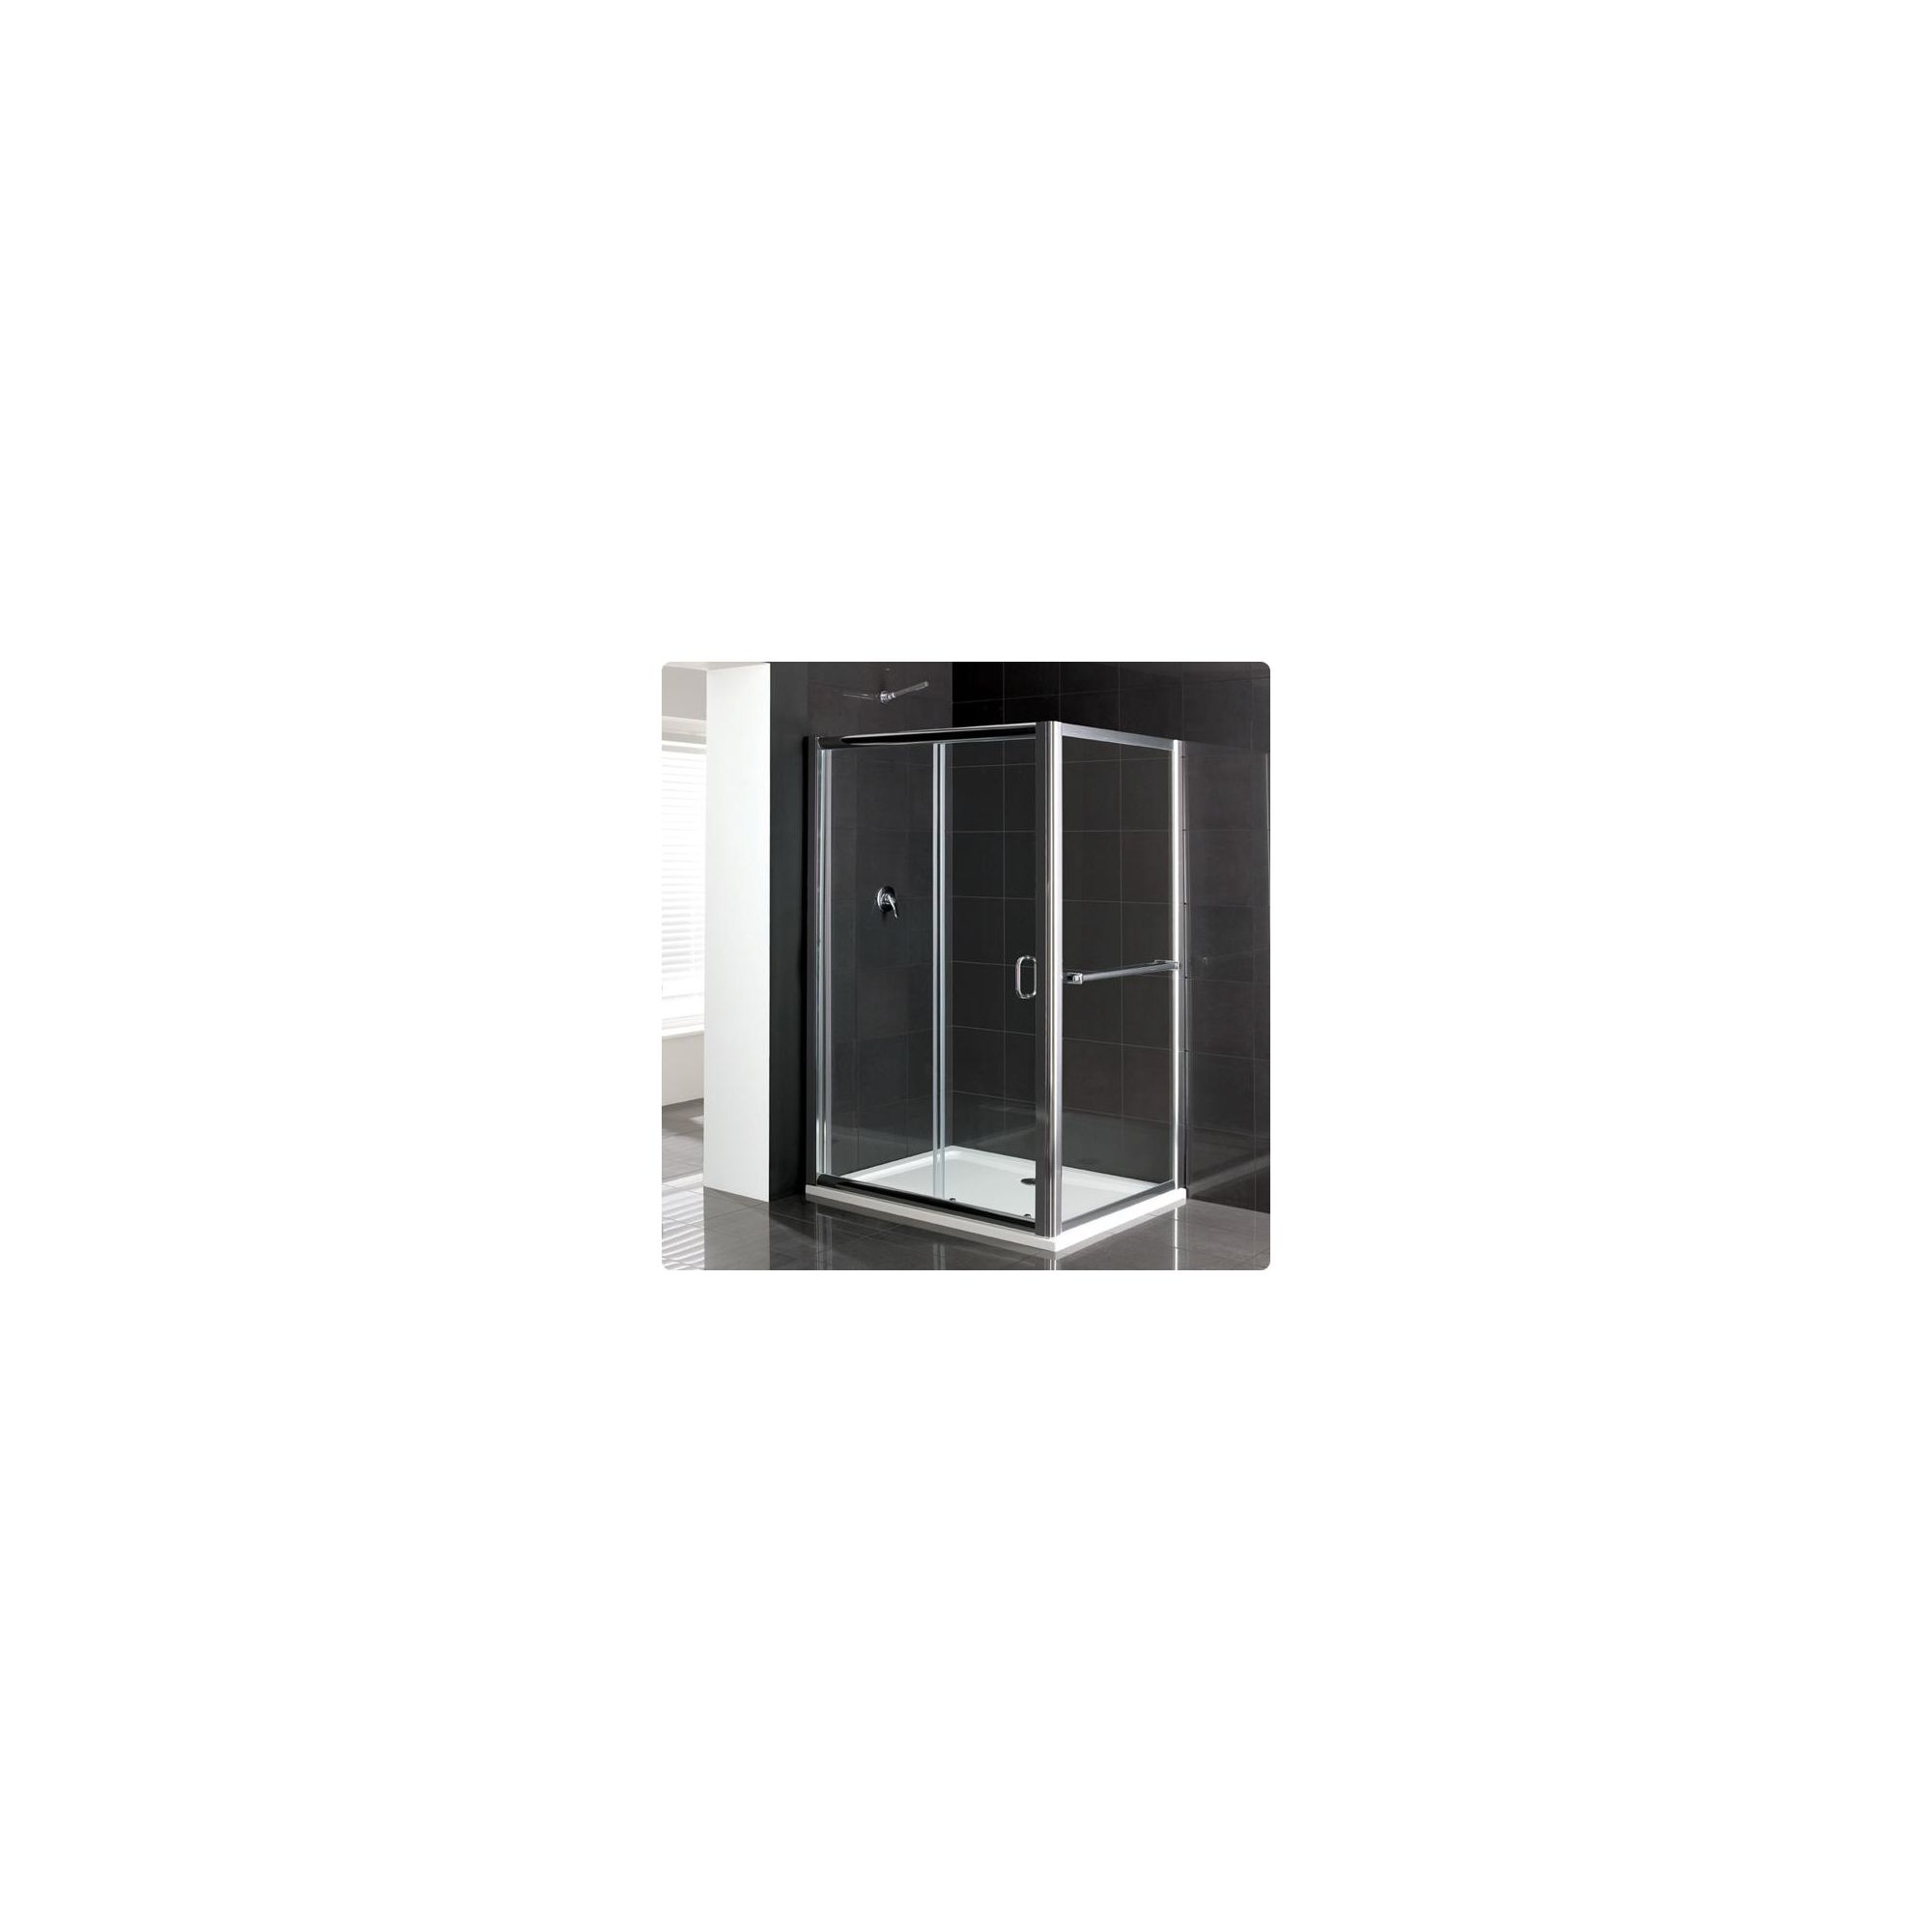 Duchy Elite Silver Sliding Door Shower Enclosure with Towel Rail, 1000mm x 700mm, Standard Tray, 6mm Glass at Tesco Direct